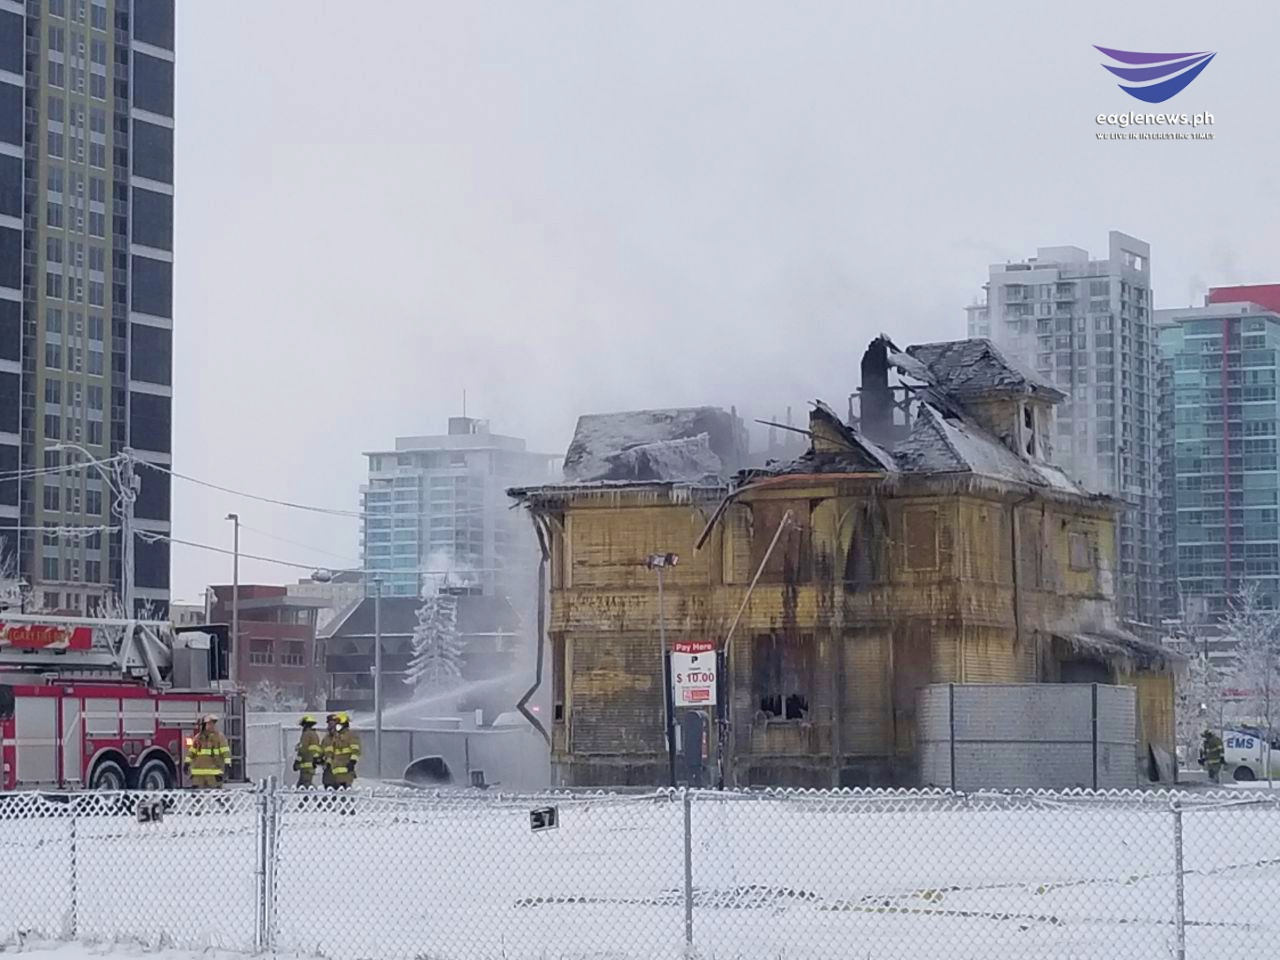 #EBCphotojournalism: Fire destroys historic Enoch Sales House in Calgary